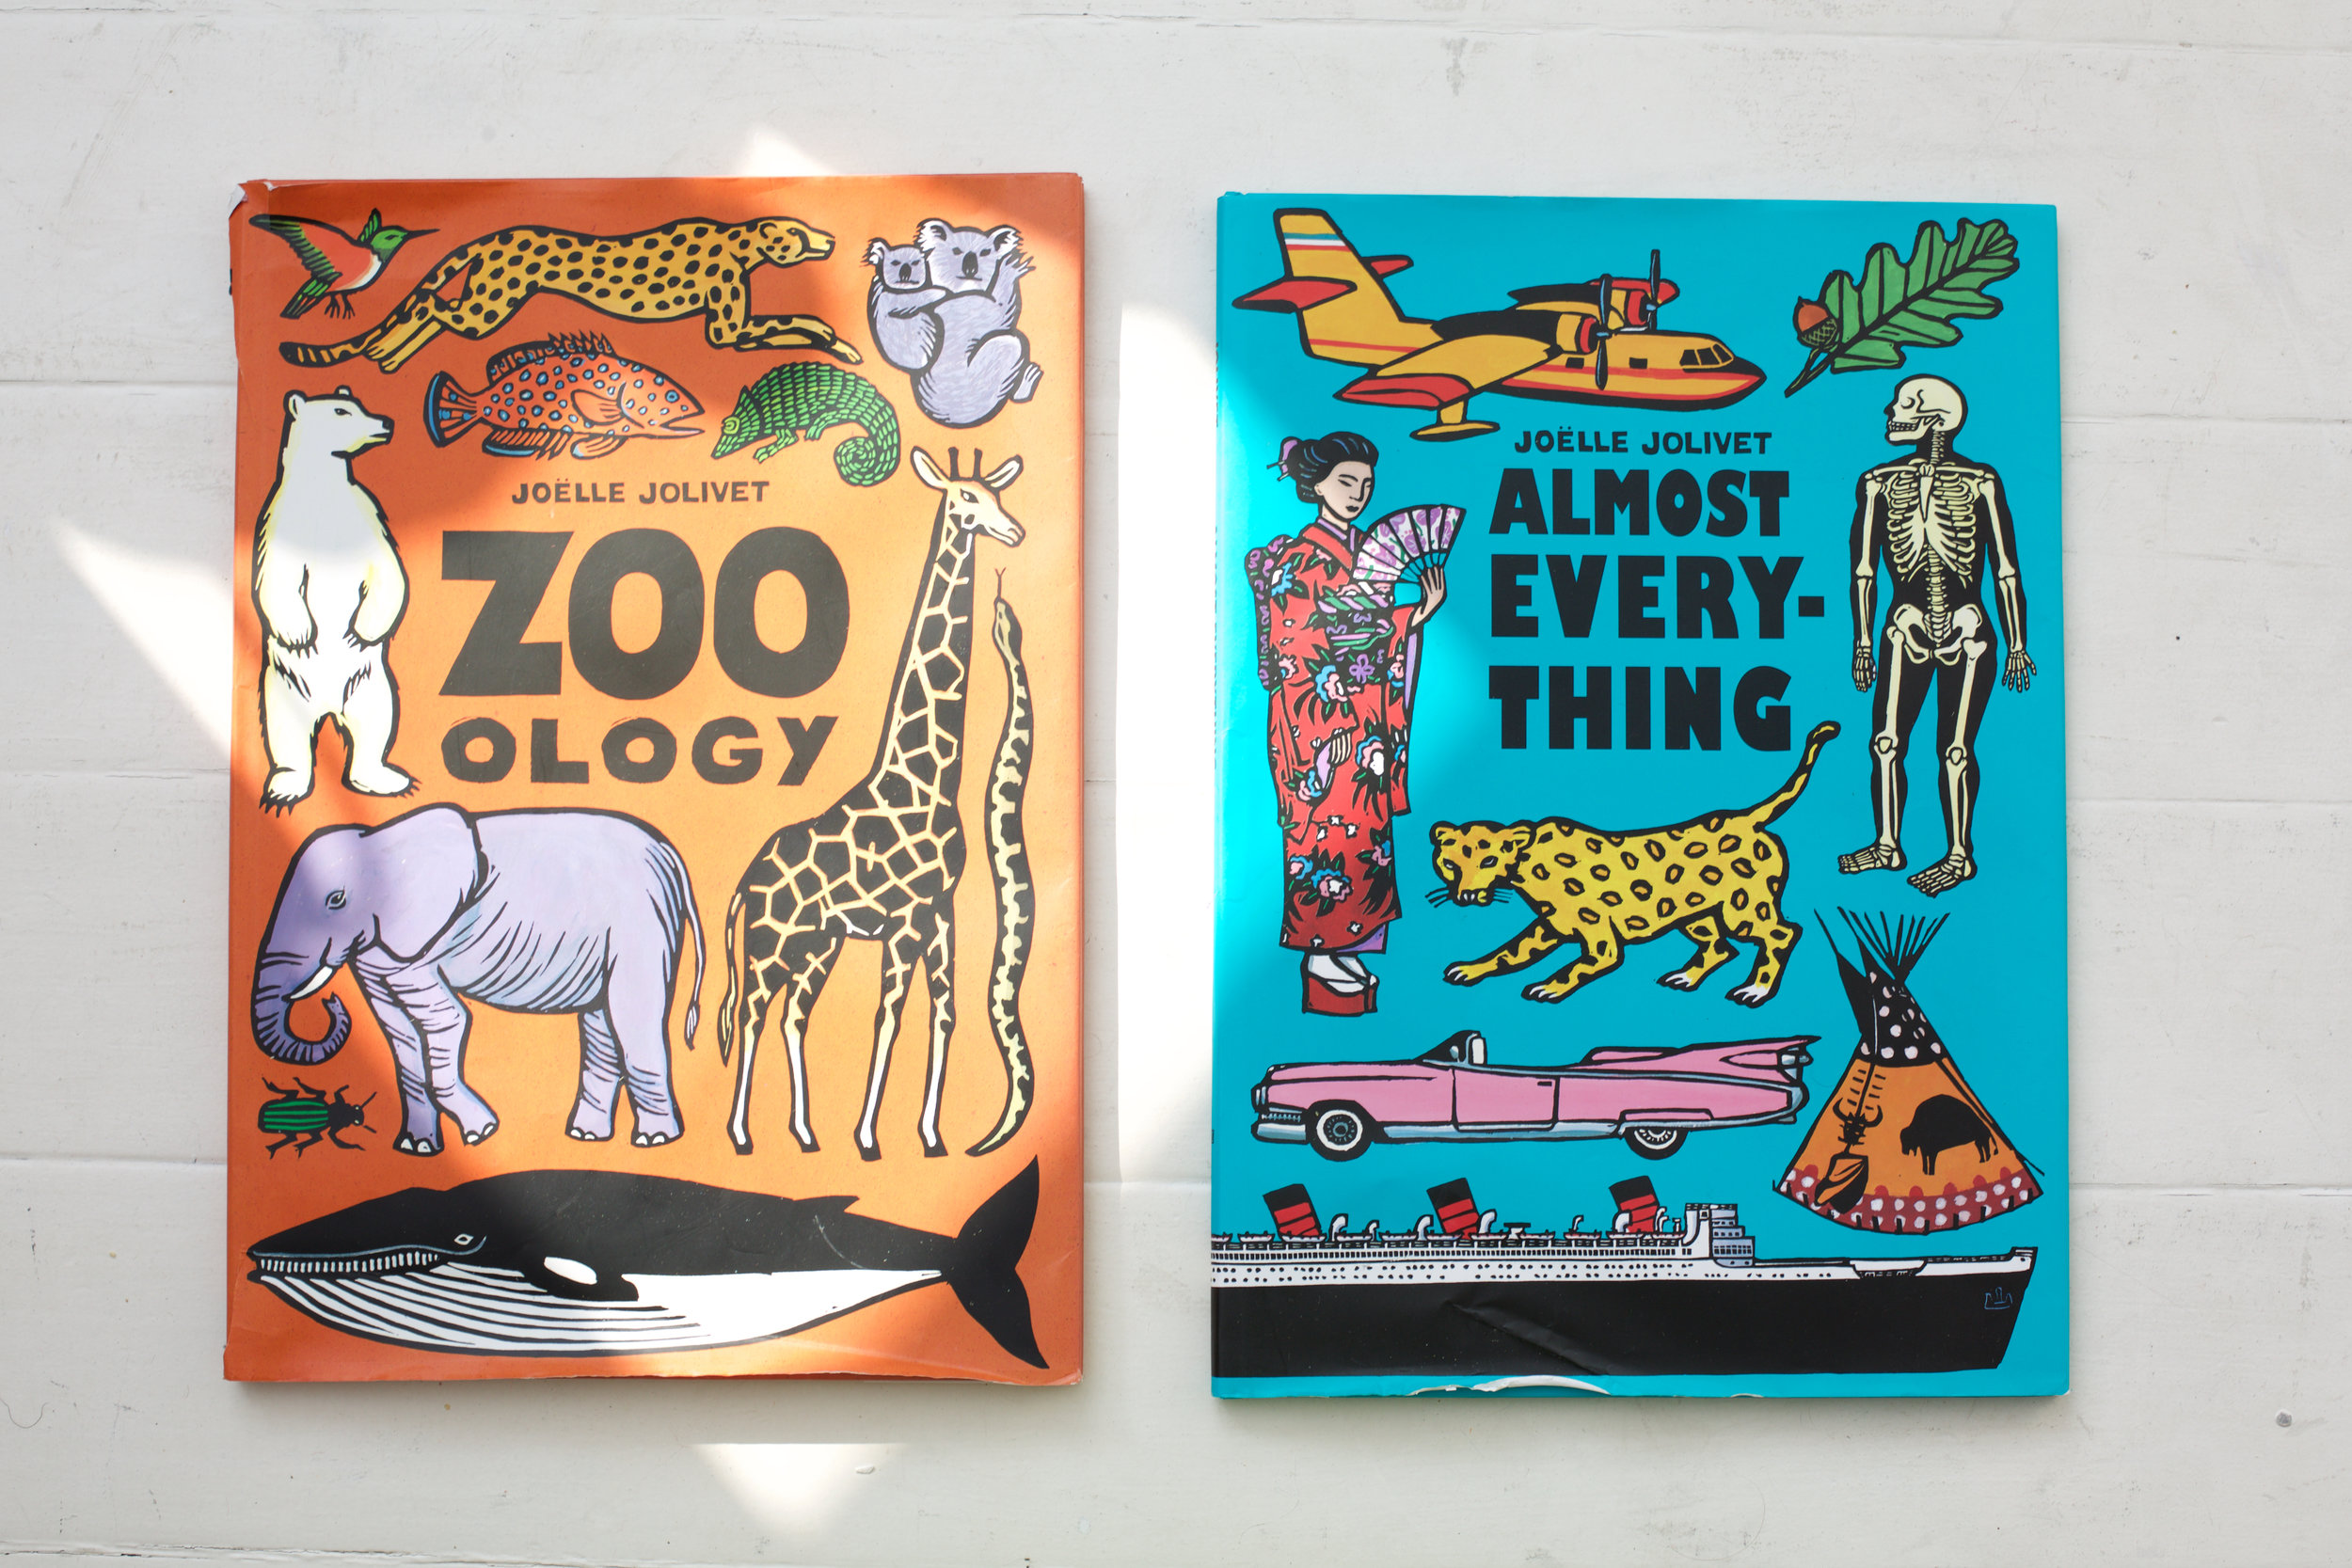 TWO OF OUR FAVOURITE BOOKS ,    ZOO OLOGY   &   ALMOST EVERYTHING   BY JOELLE JOLIVET...WE JUST CANT TAKE OUR EYES OFF THE FUN POP GRAPHICS IN HER BOOKS. THE SUPER SIZED SCALE ALSO MAKE THEM THE PERFECT SIZE FOR SHO TO HIDE BEHIND WHEN WE PLAY HIDE AND SEEK!...SO COOL!!!